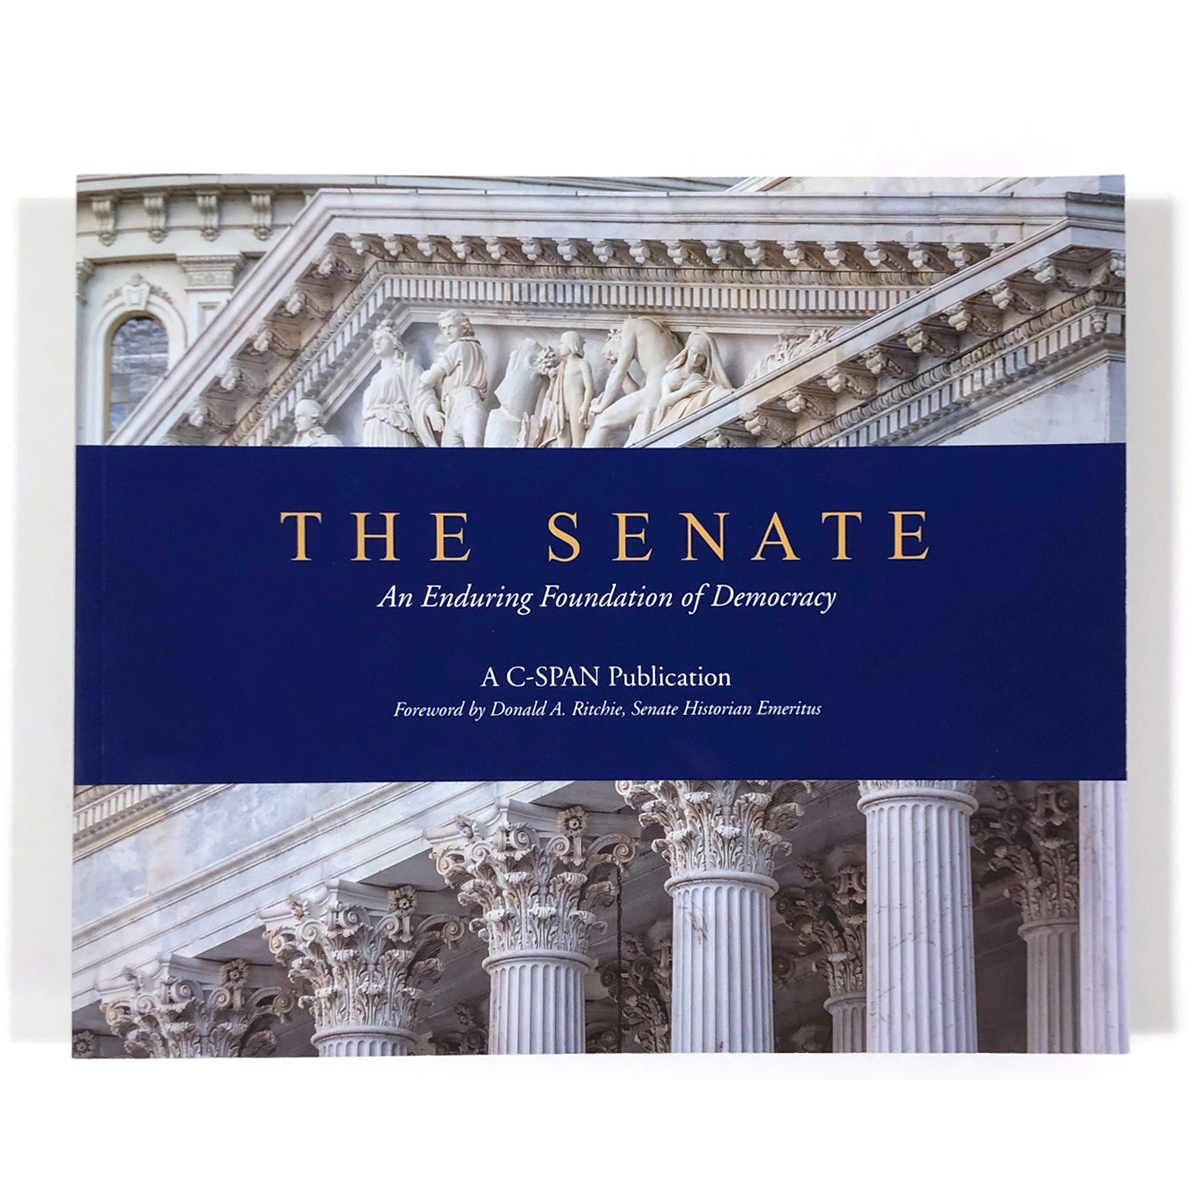 The Senate: An Enduring Foundation of Democracy